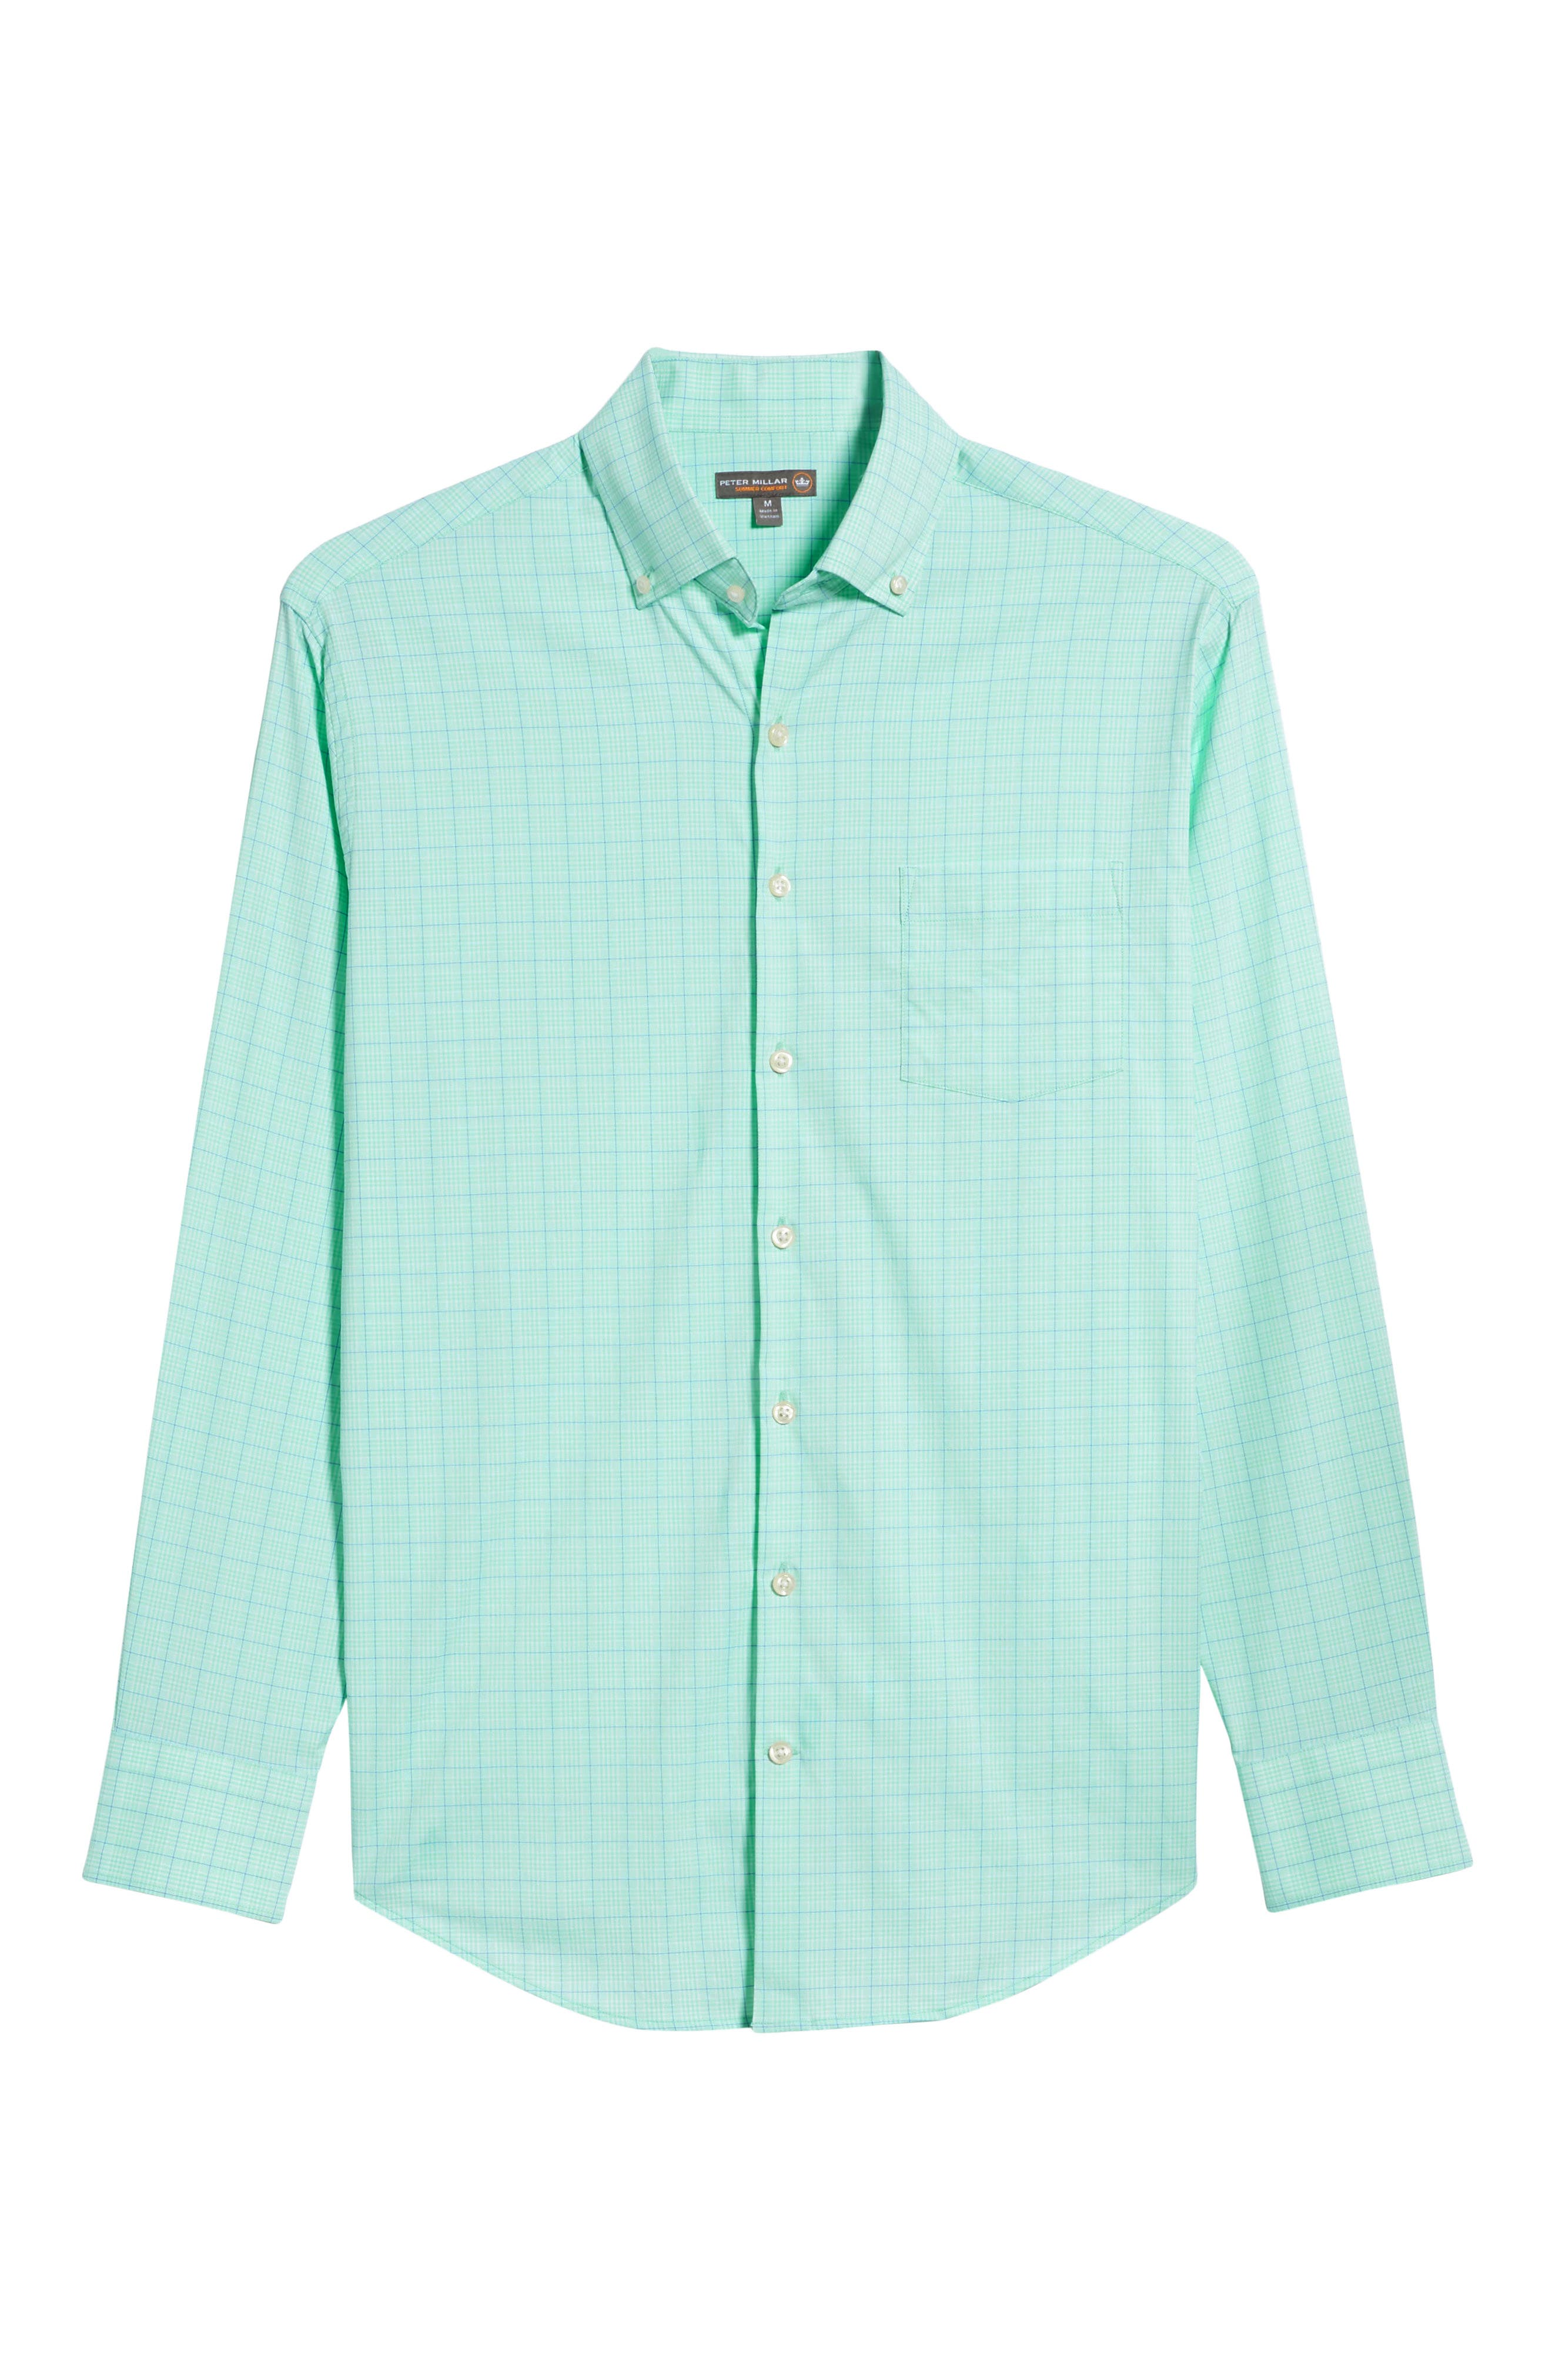 McConnell Plaid Performance Sport Shirt,                             Alternate thumbnail 6, color,                             Cays